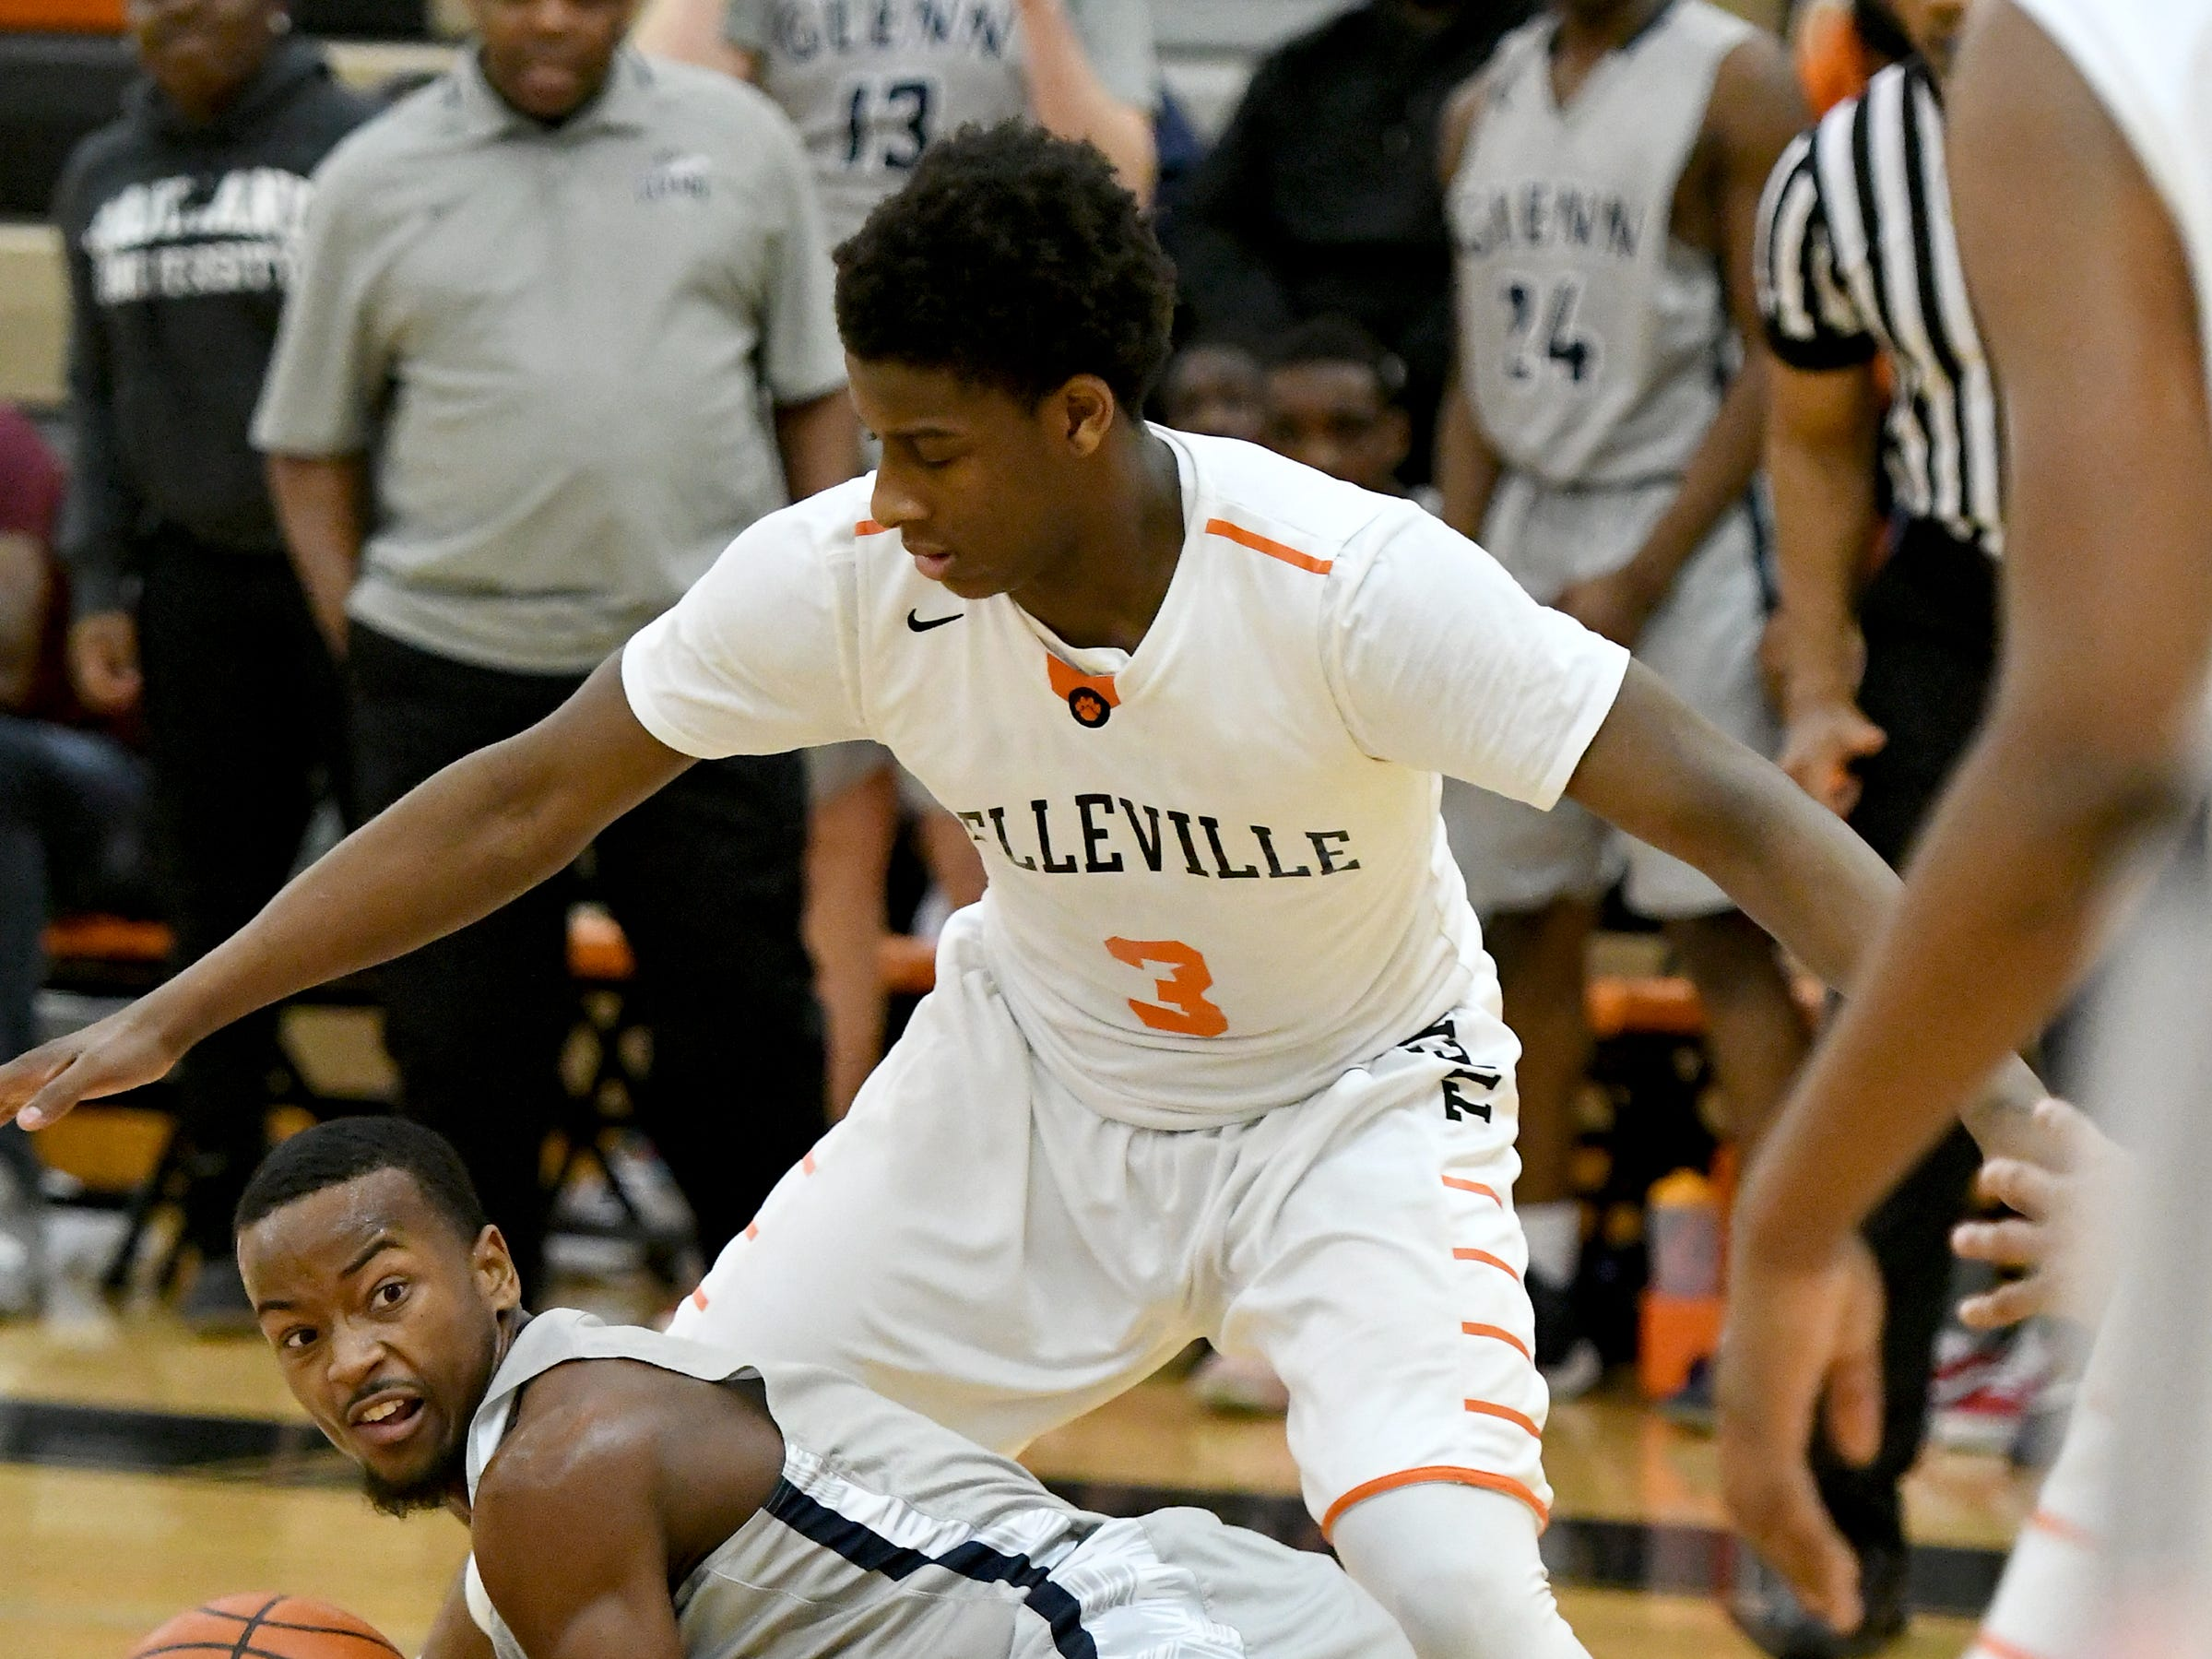 John Glenn High School's Elijah White, bottom, tries to pass to a teammate while falling to the court while being defended by Belleville High School's, Jalen Williams in the fourth quarter.